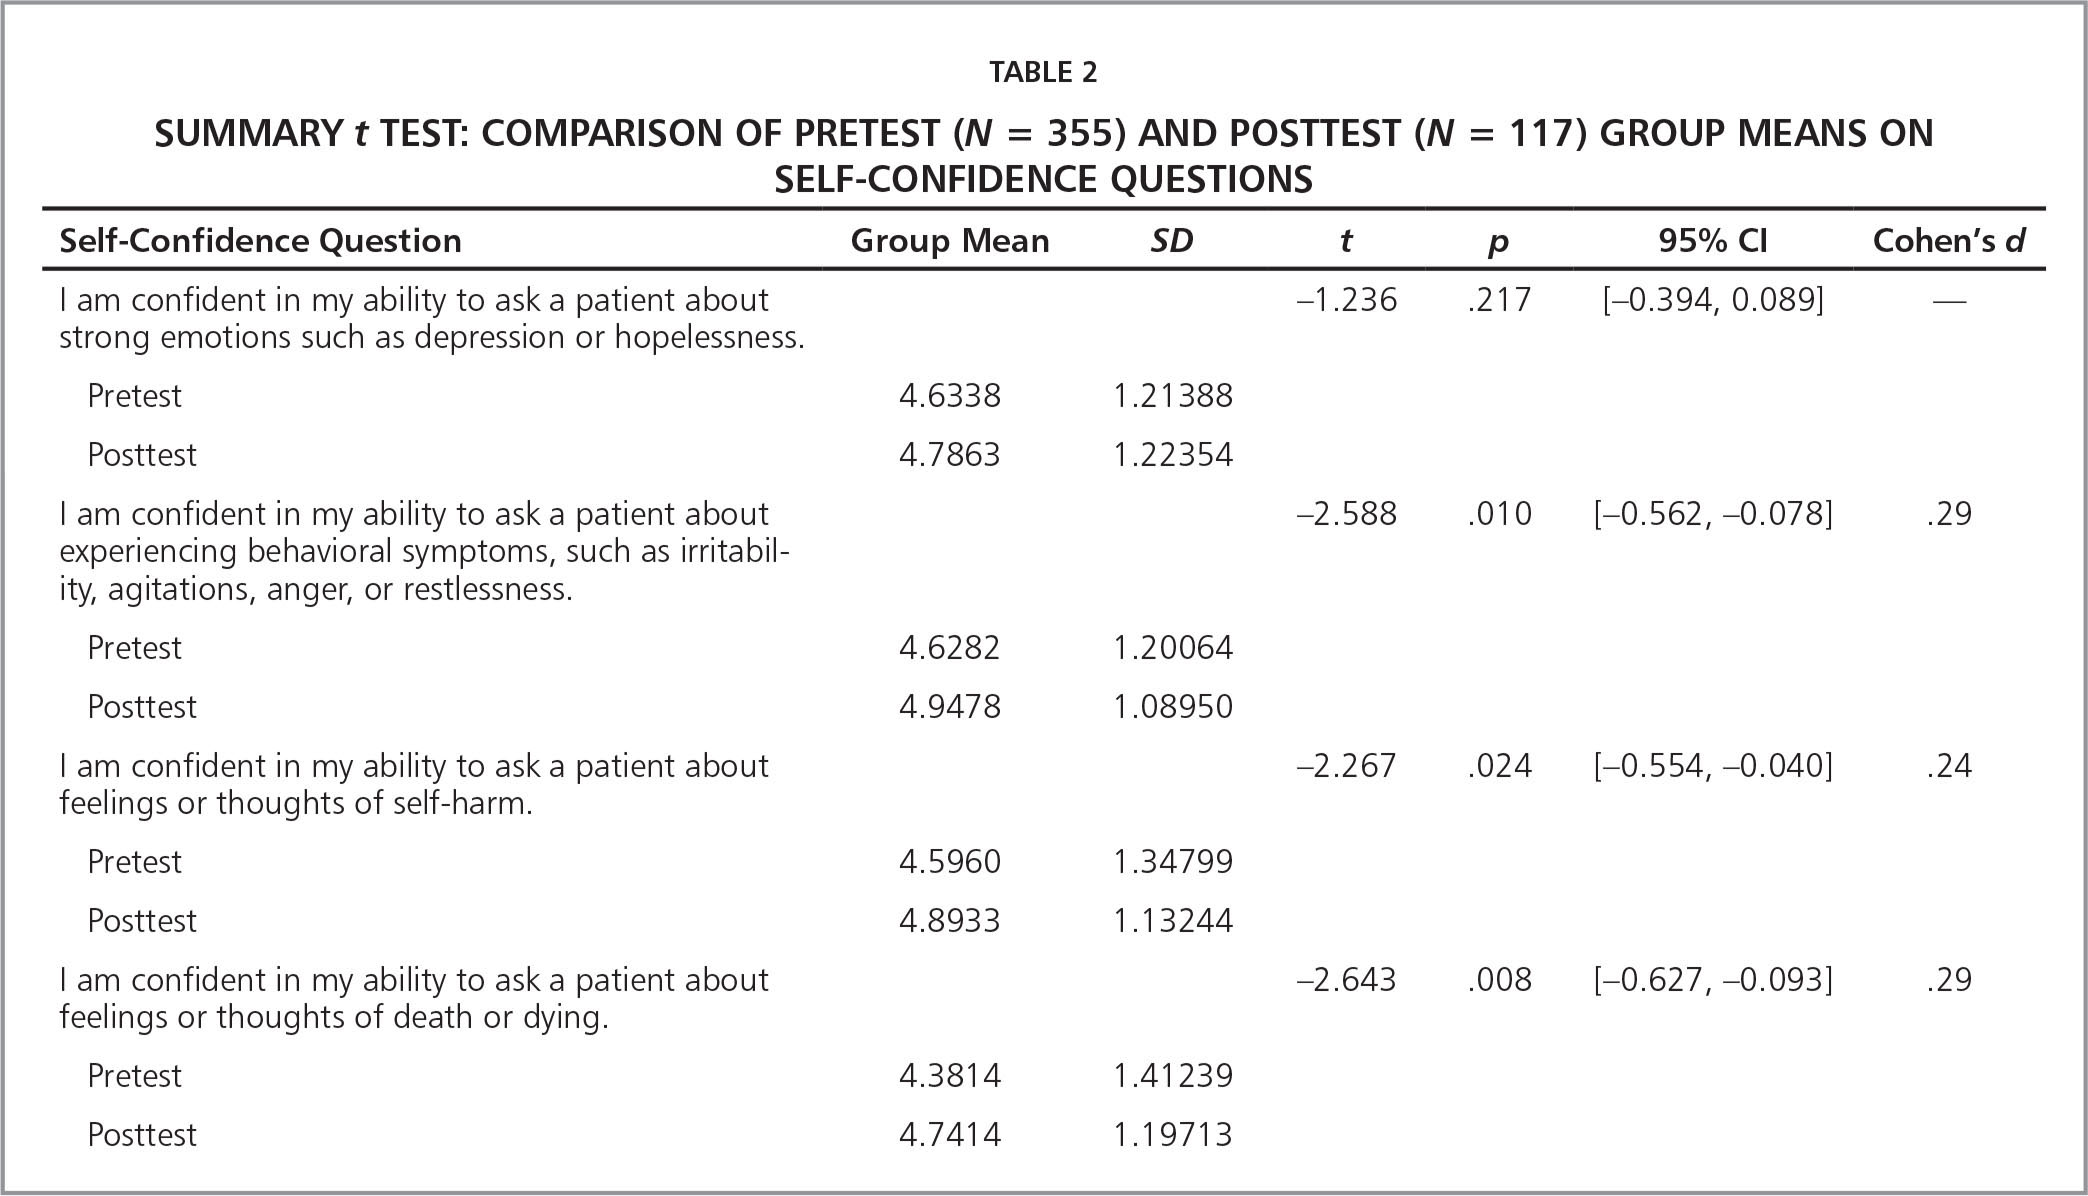 Summary t Test: Comparison of Pretest (N = 355) and Posttest (N = 117) Group Means on Self-Confidence Questions